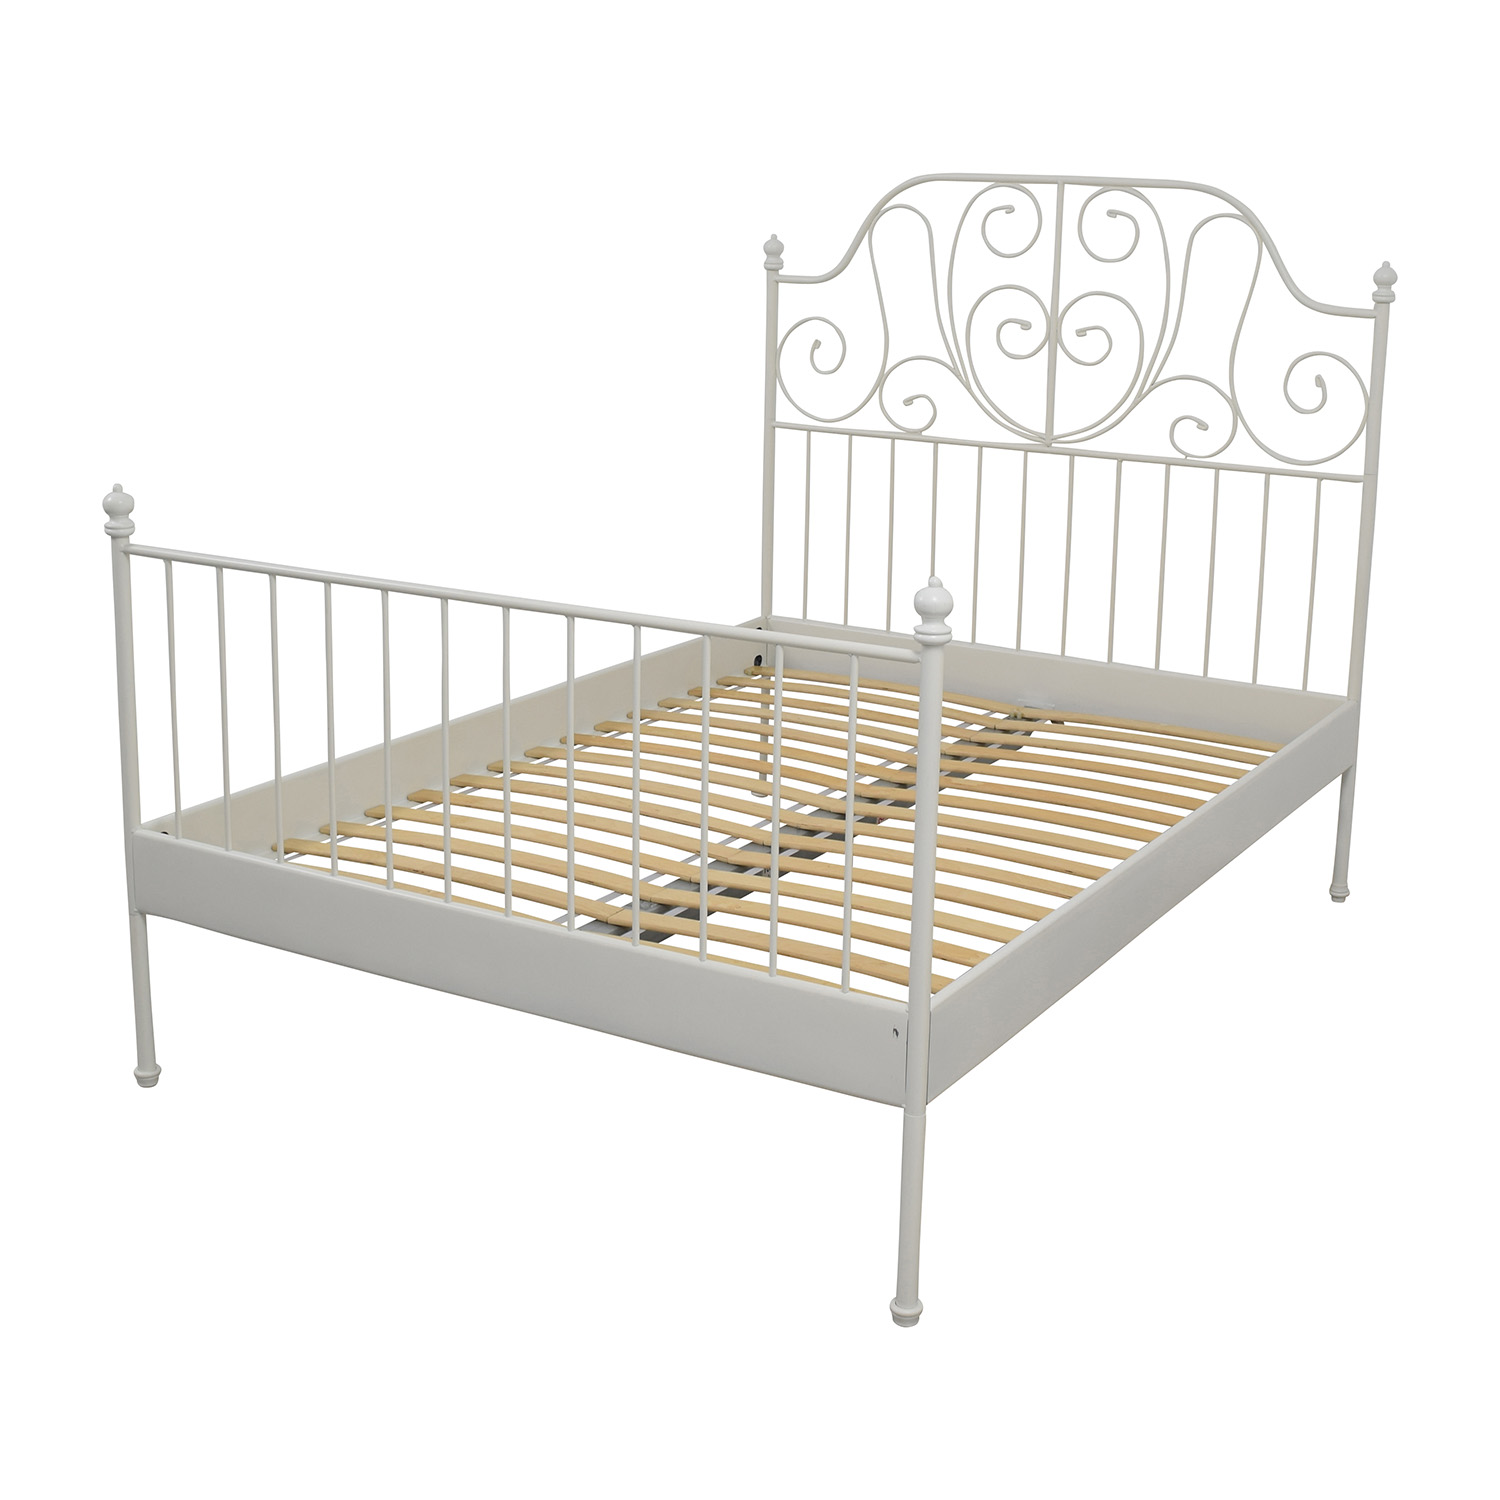 64 off ikea ikea leirvik full size bed frame beds for Full size bed ikea